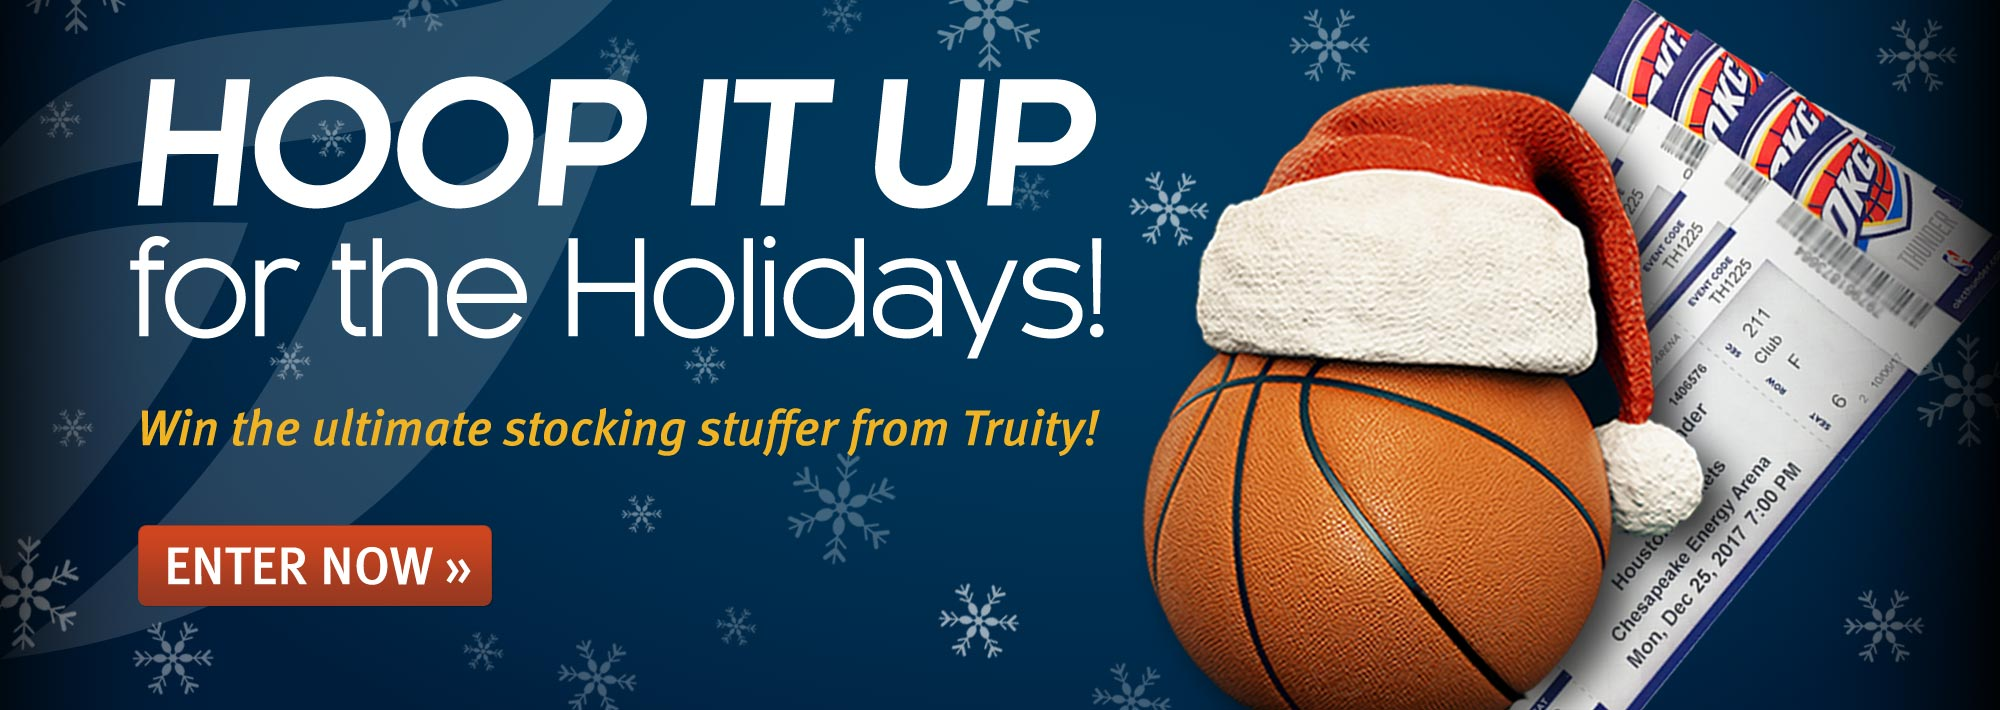 Hoop it up for the Holidays! Win the ultimate stocking stuffer from Truity!